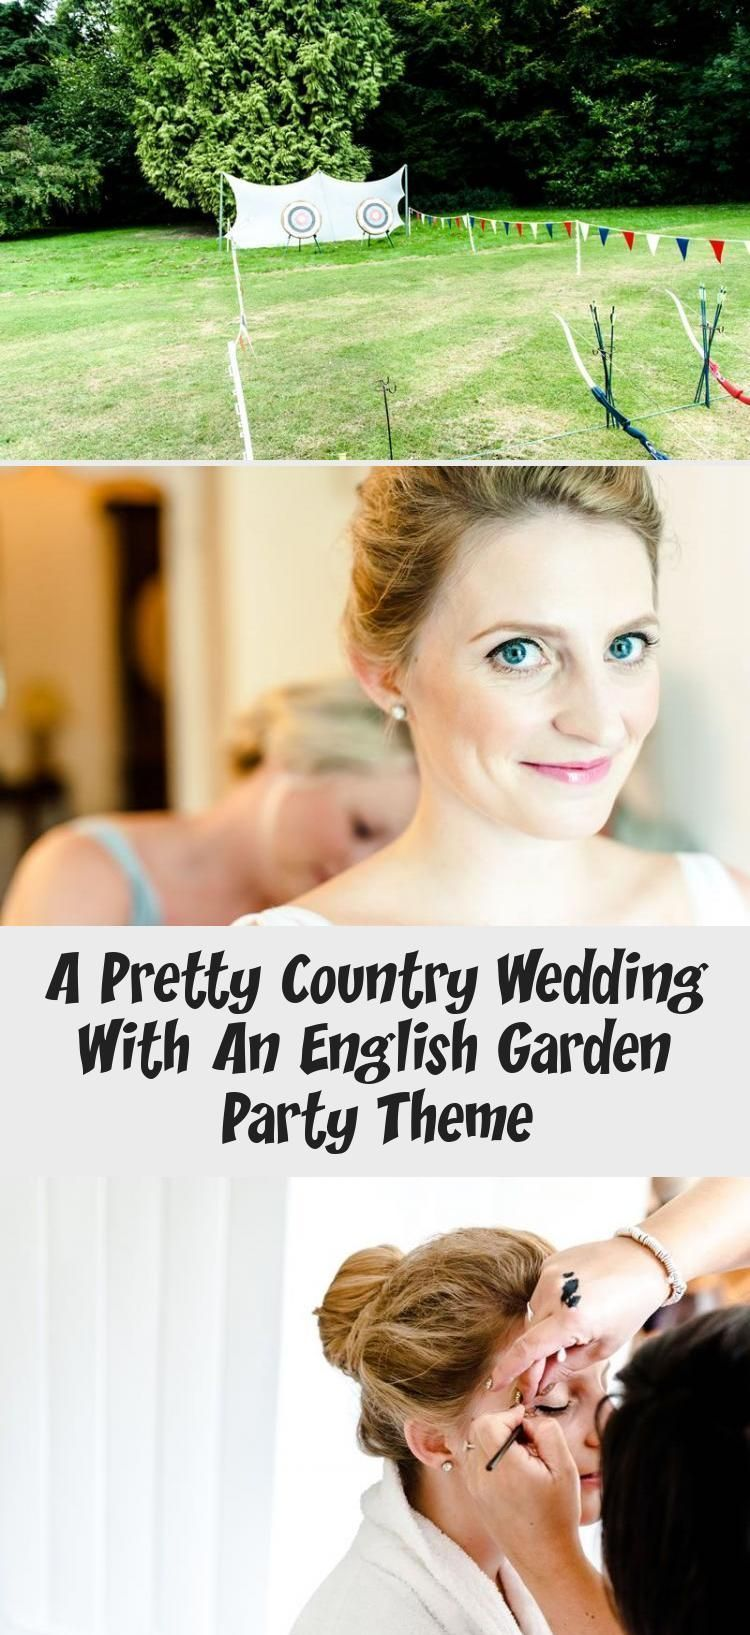 A pretty country wedding with an English garden party theme garden party outfit A pretty country wedding with an English garden party theme